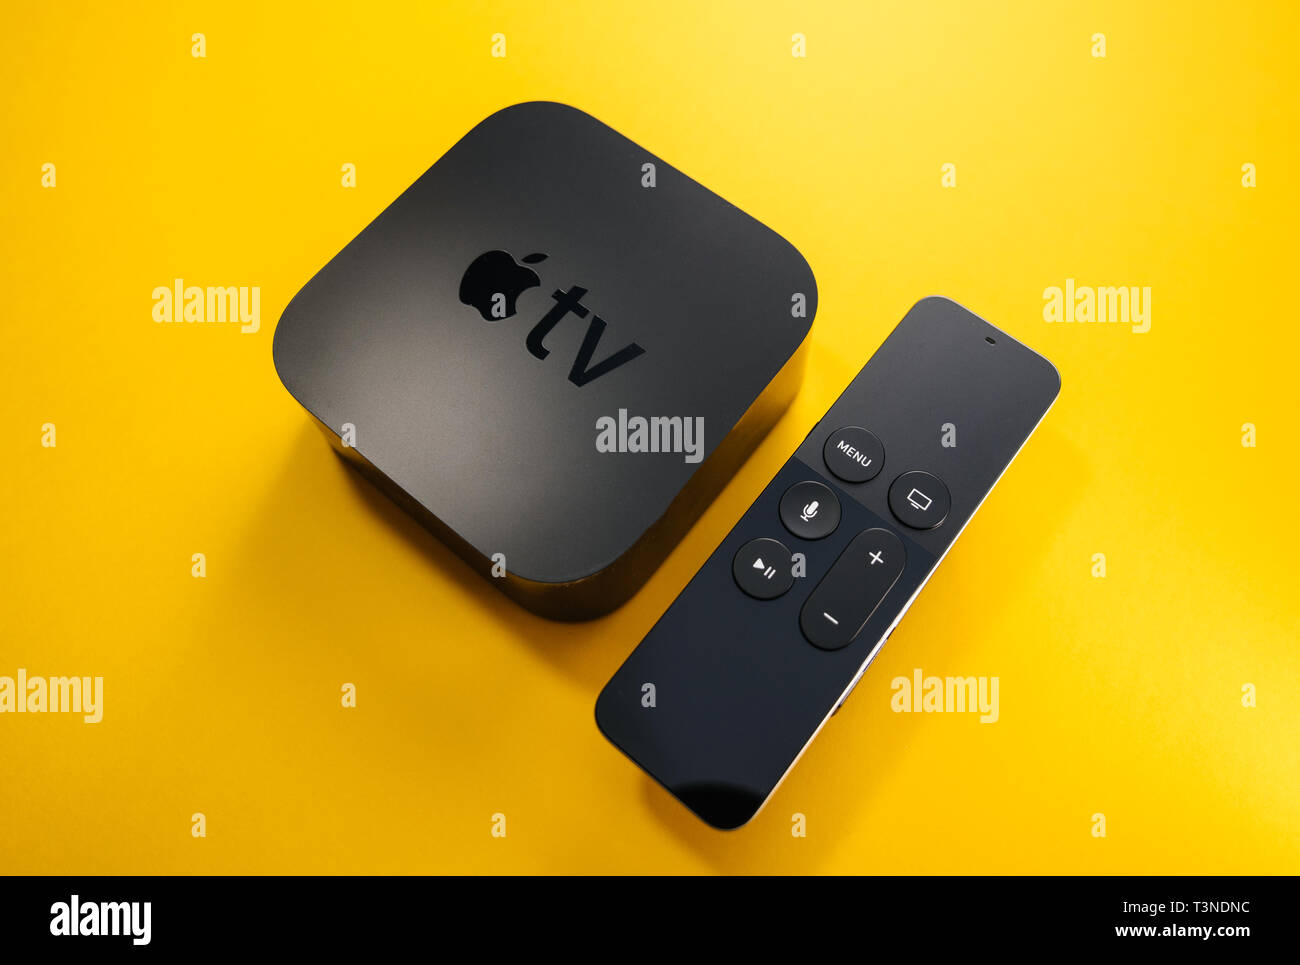 Apple Tv 4th Generation Stock Photos & Apple Tv 4th